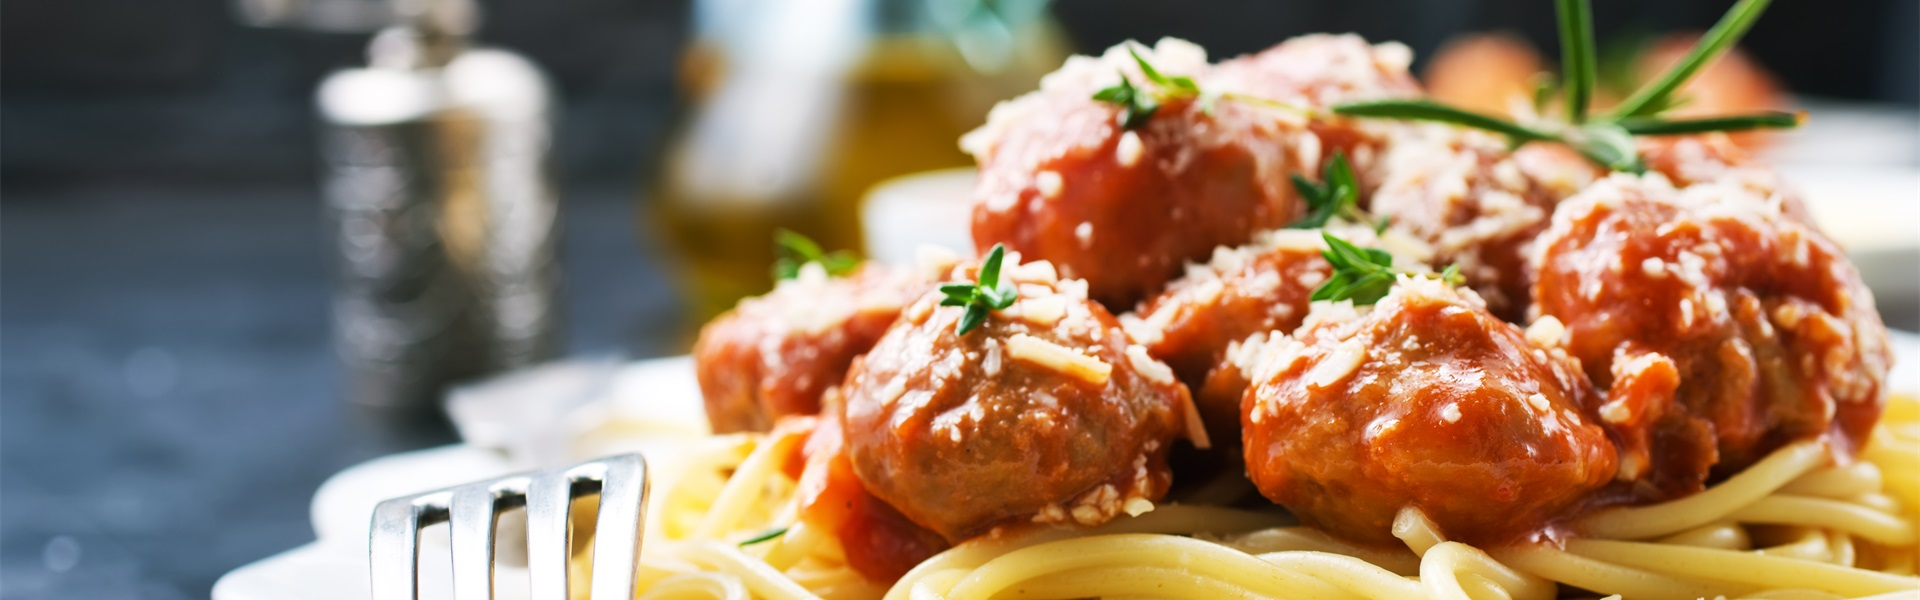 Recipe: Meatballs with spaghetti